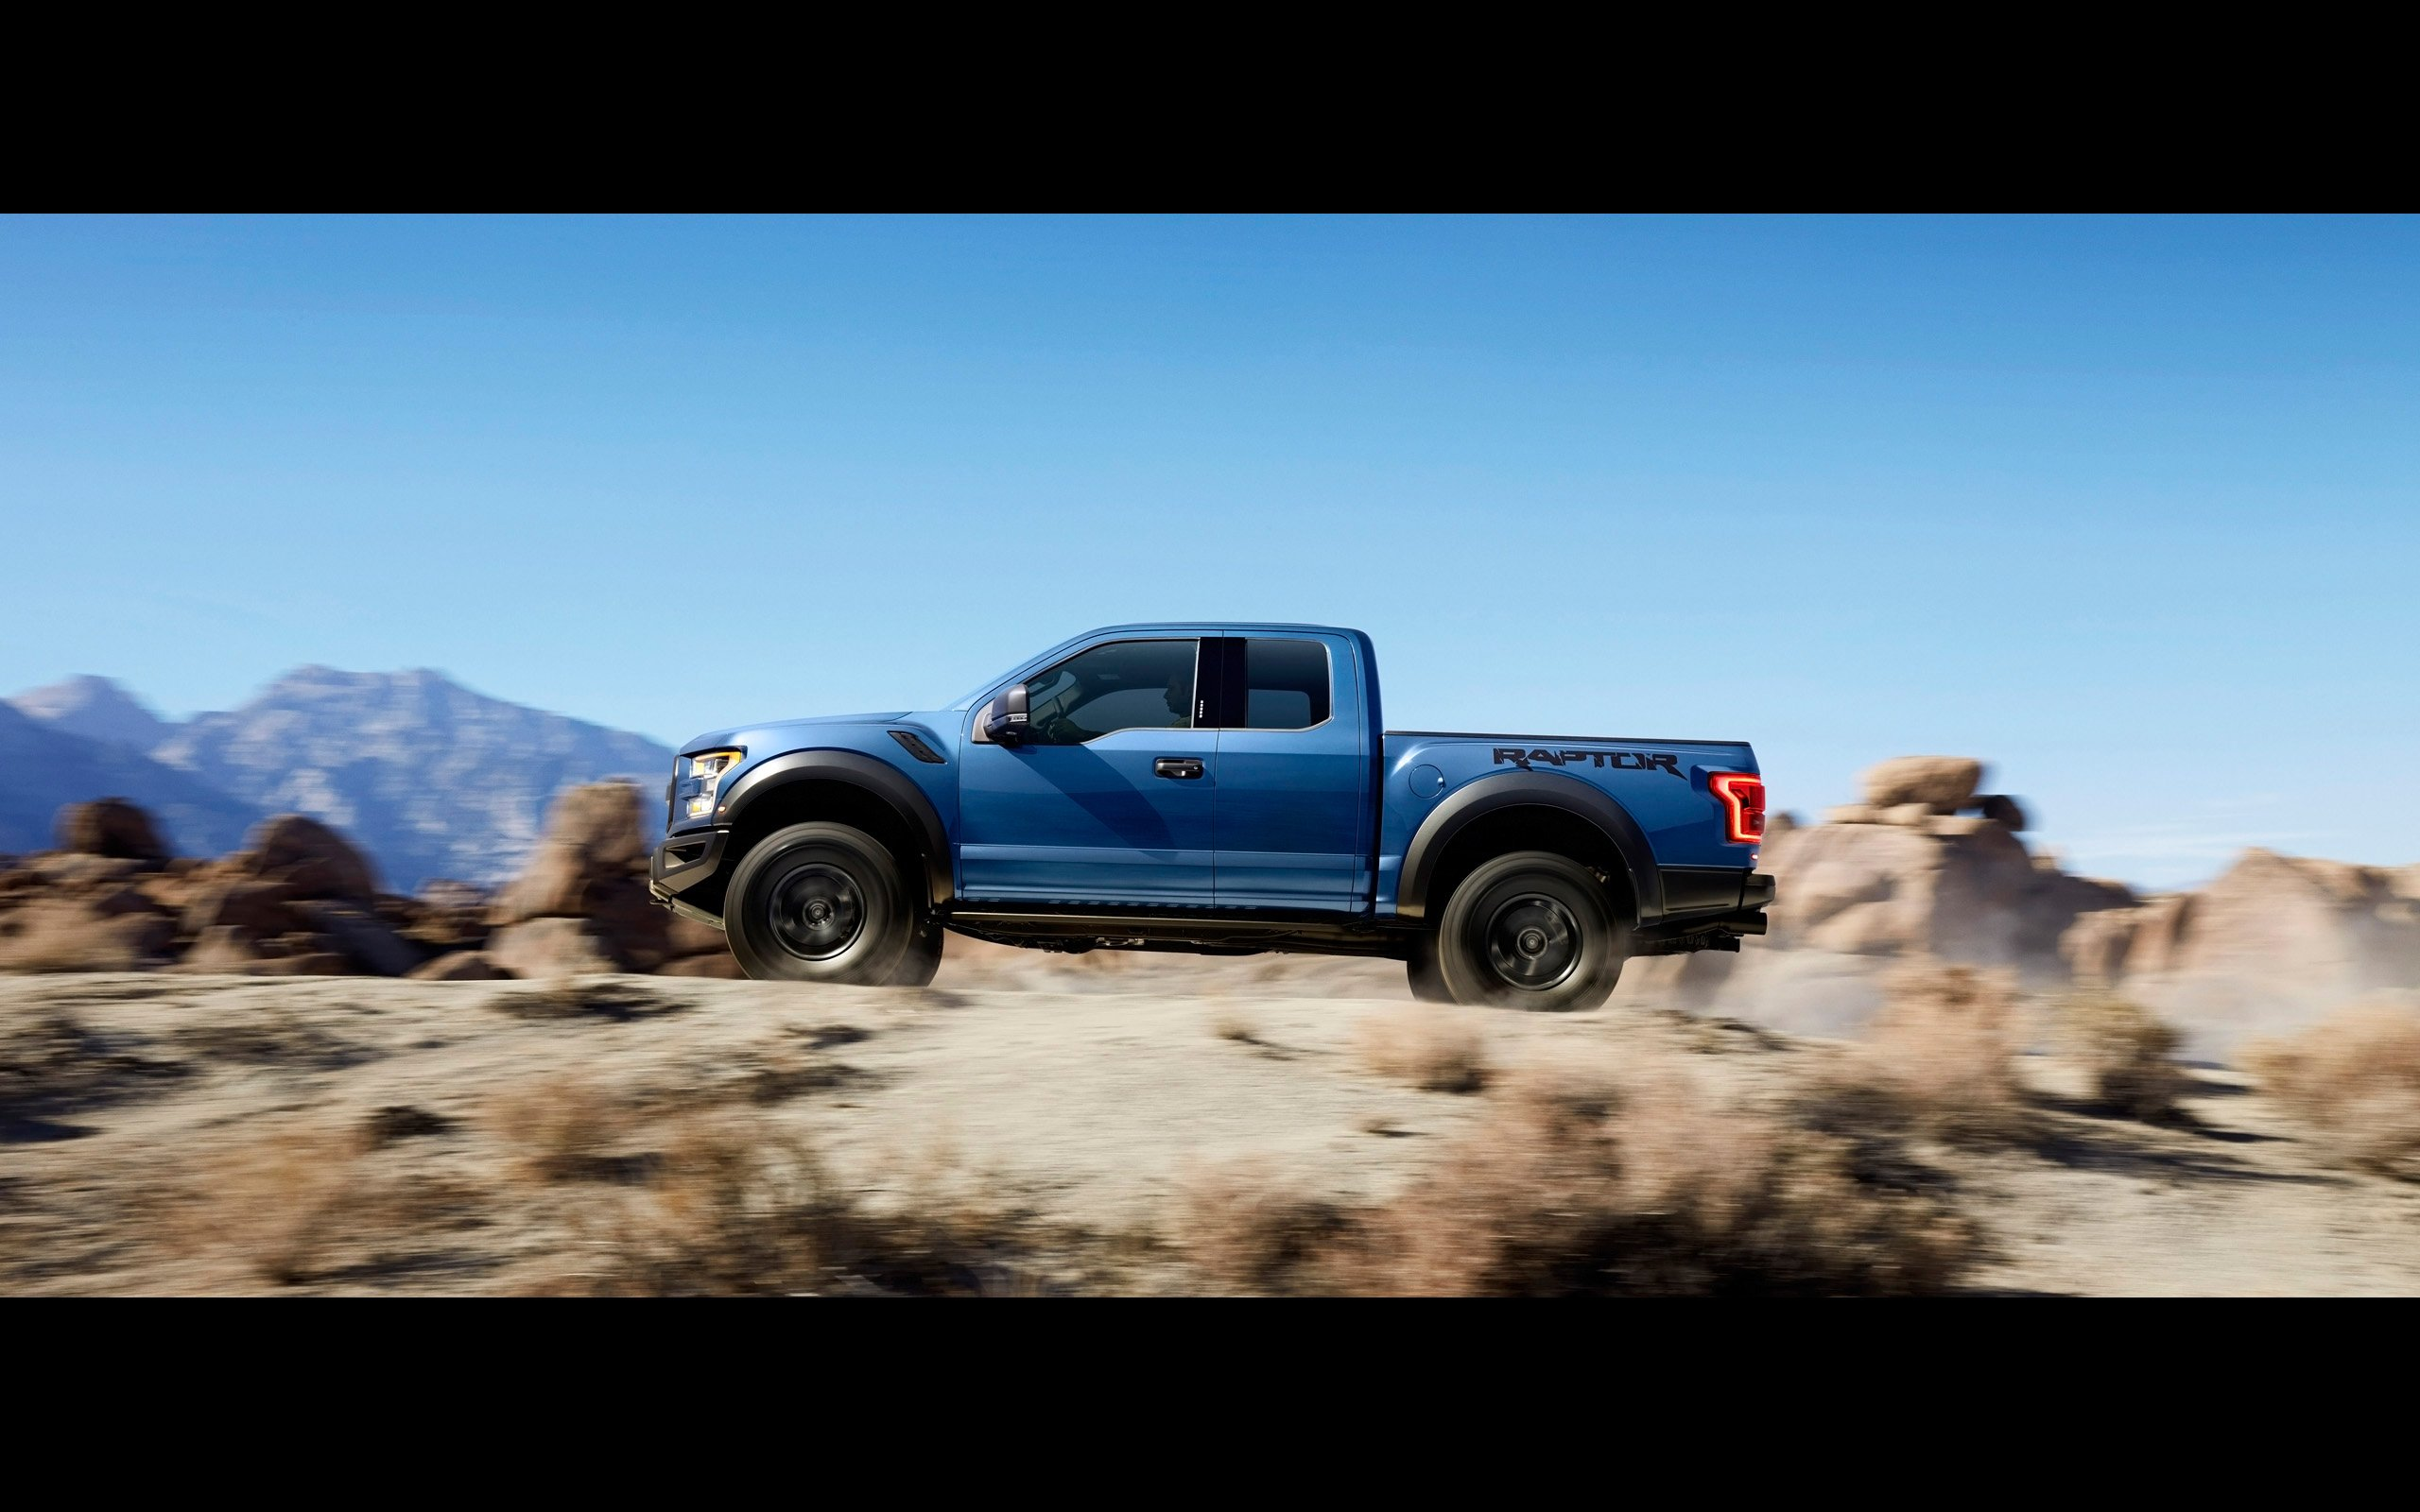 2017 Ford F 150 Raptor muscle pickup f150 awd wallpaper background 2560x1600